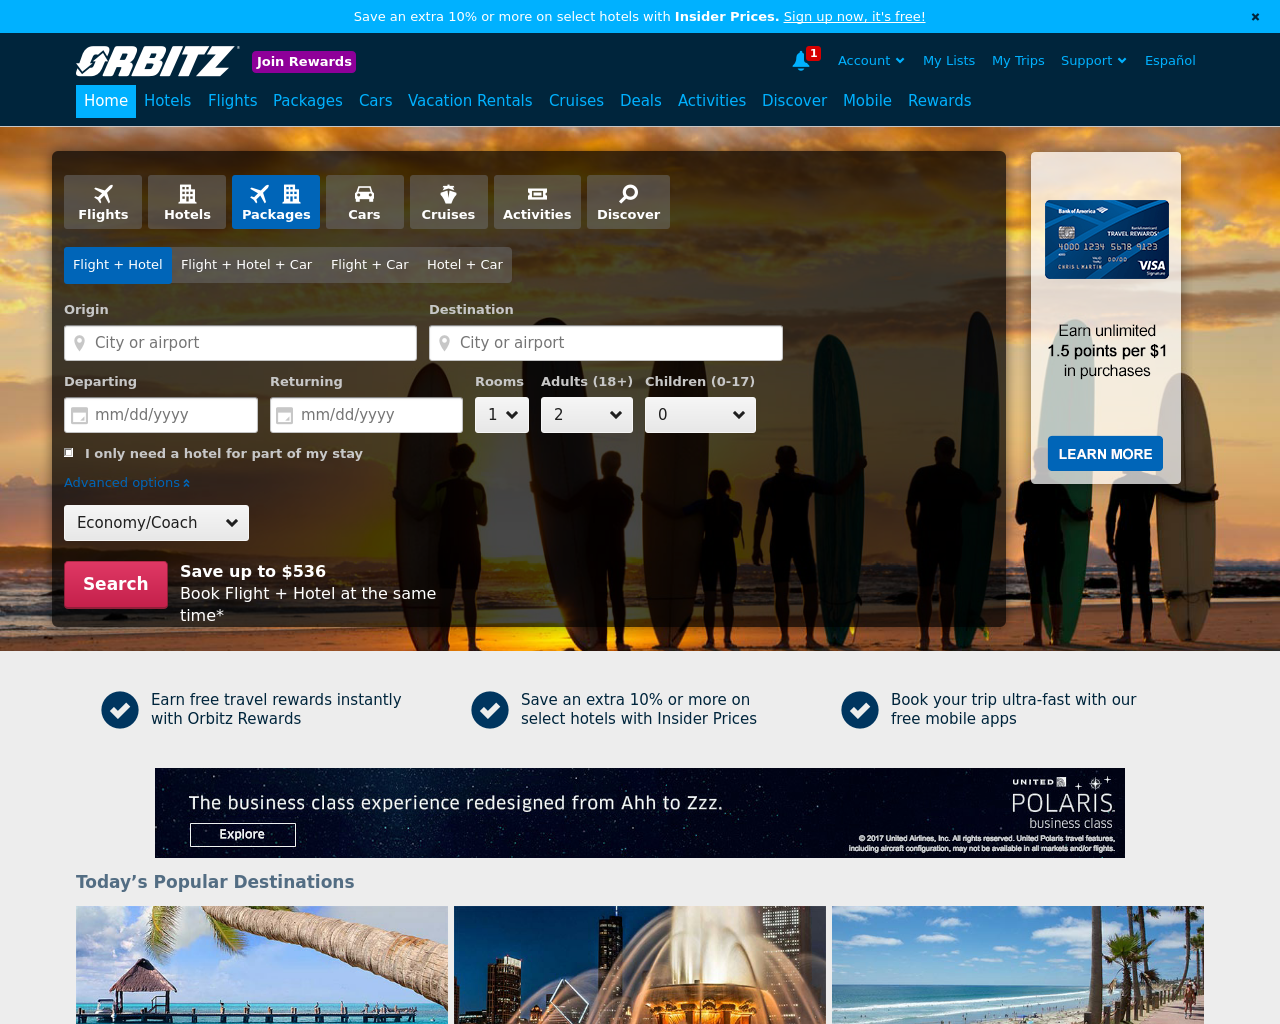 Orbitz-Worldwide-Advertising-Reviews-Pricing